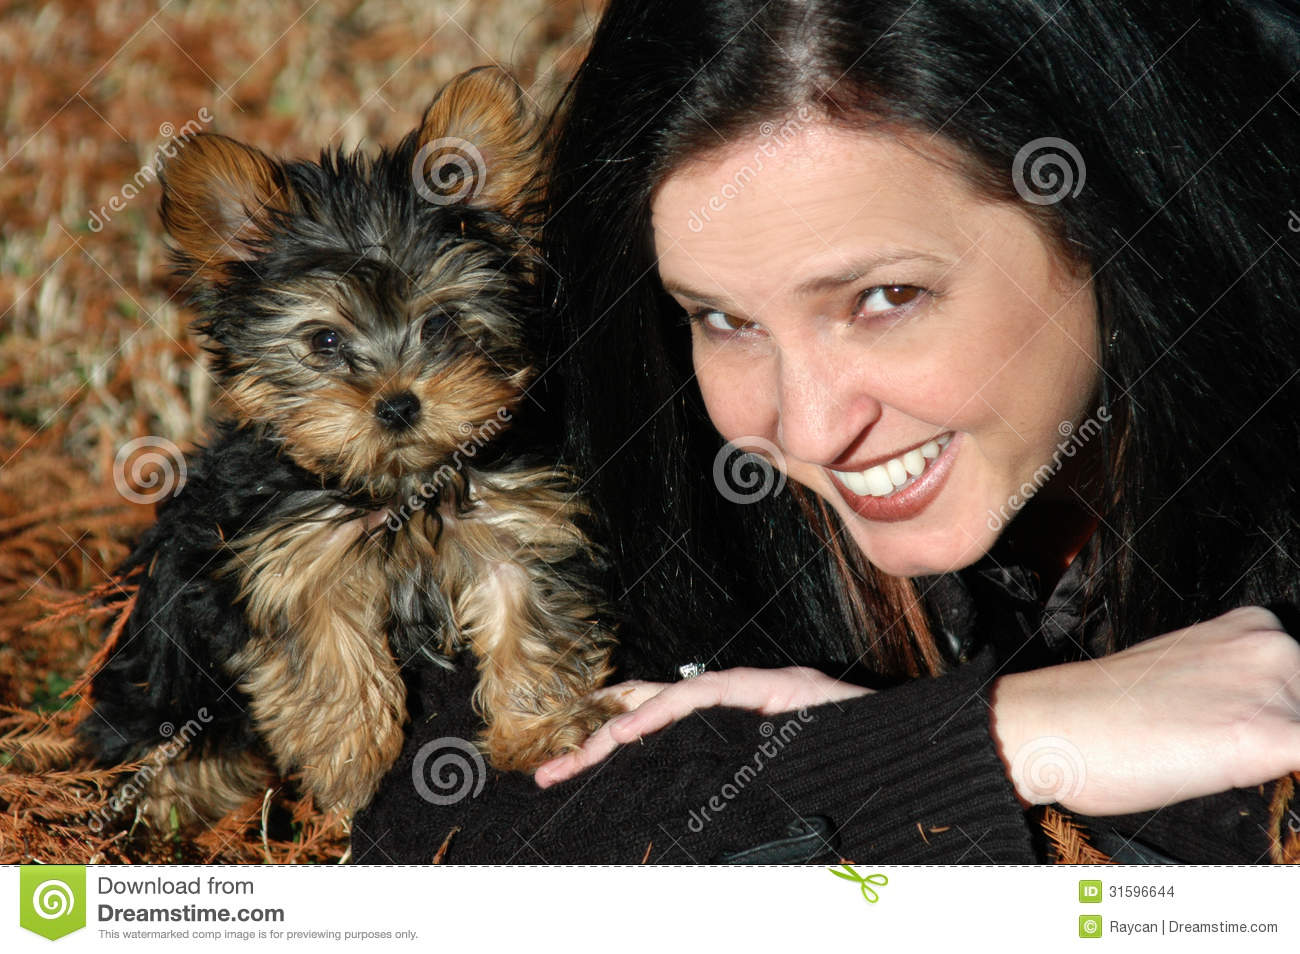 1 180 Miniature Yorkie Puppy Photos Free Royalty Free Stock Photos From Dreamstime